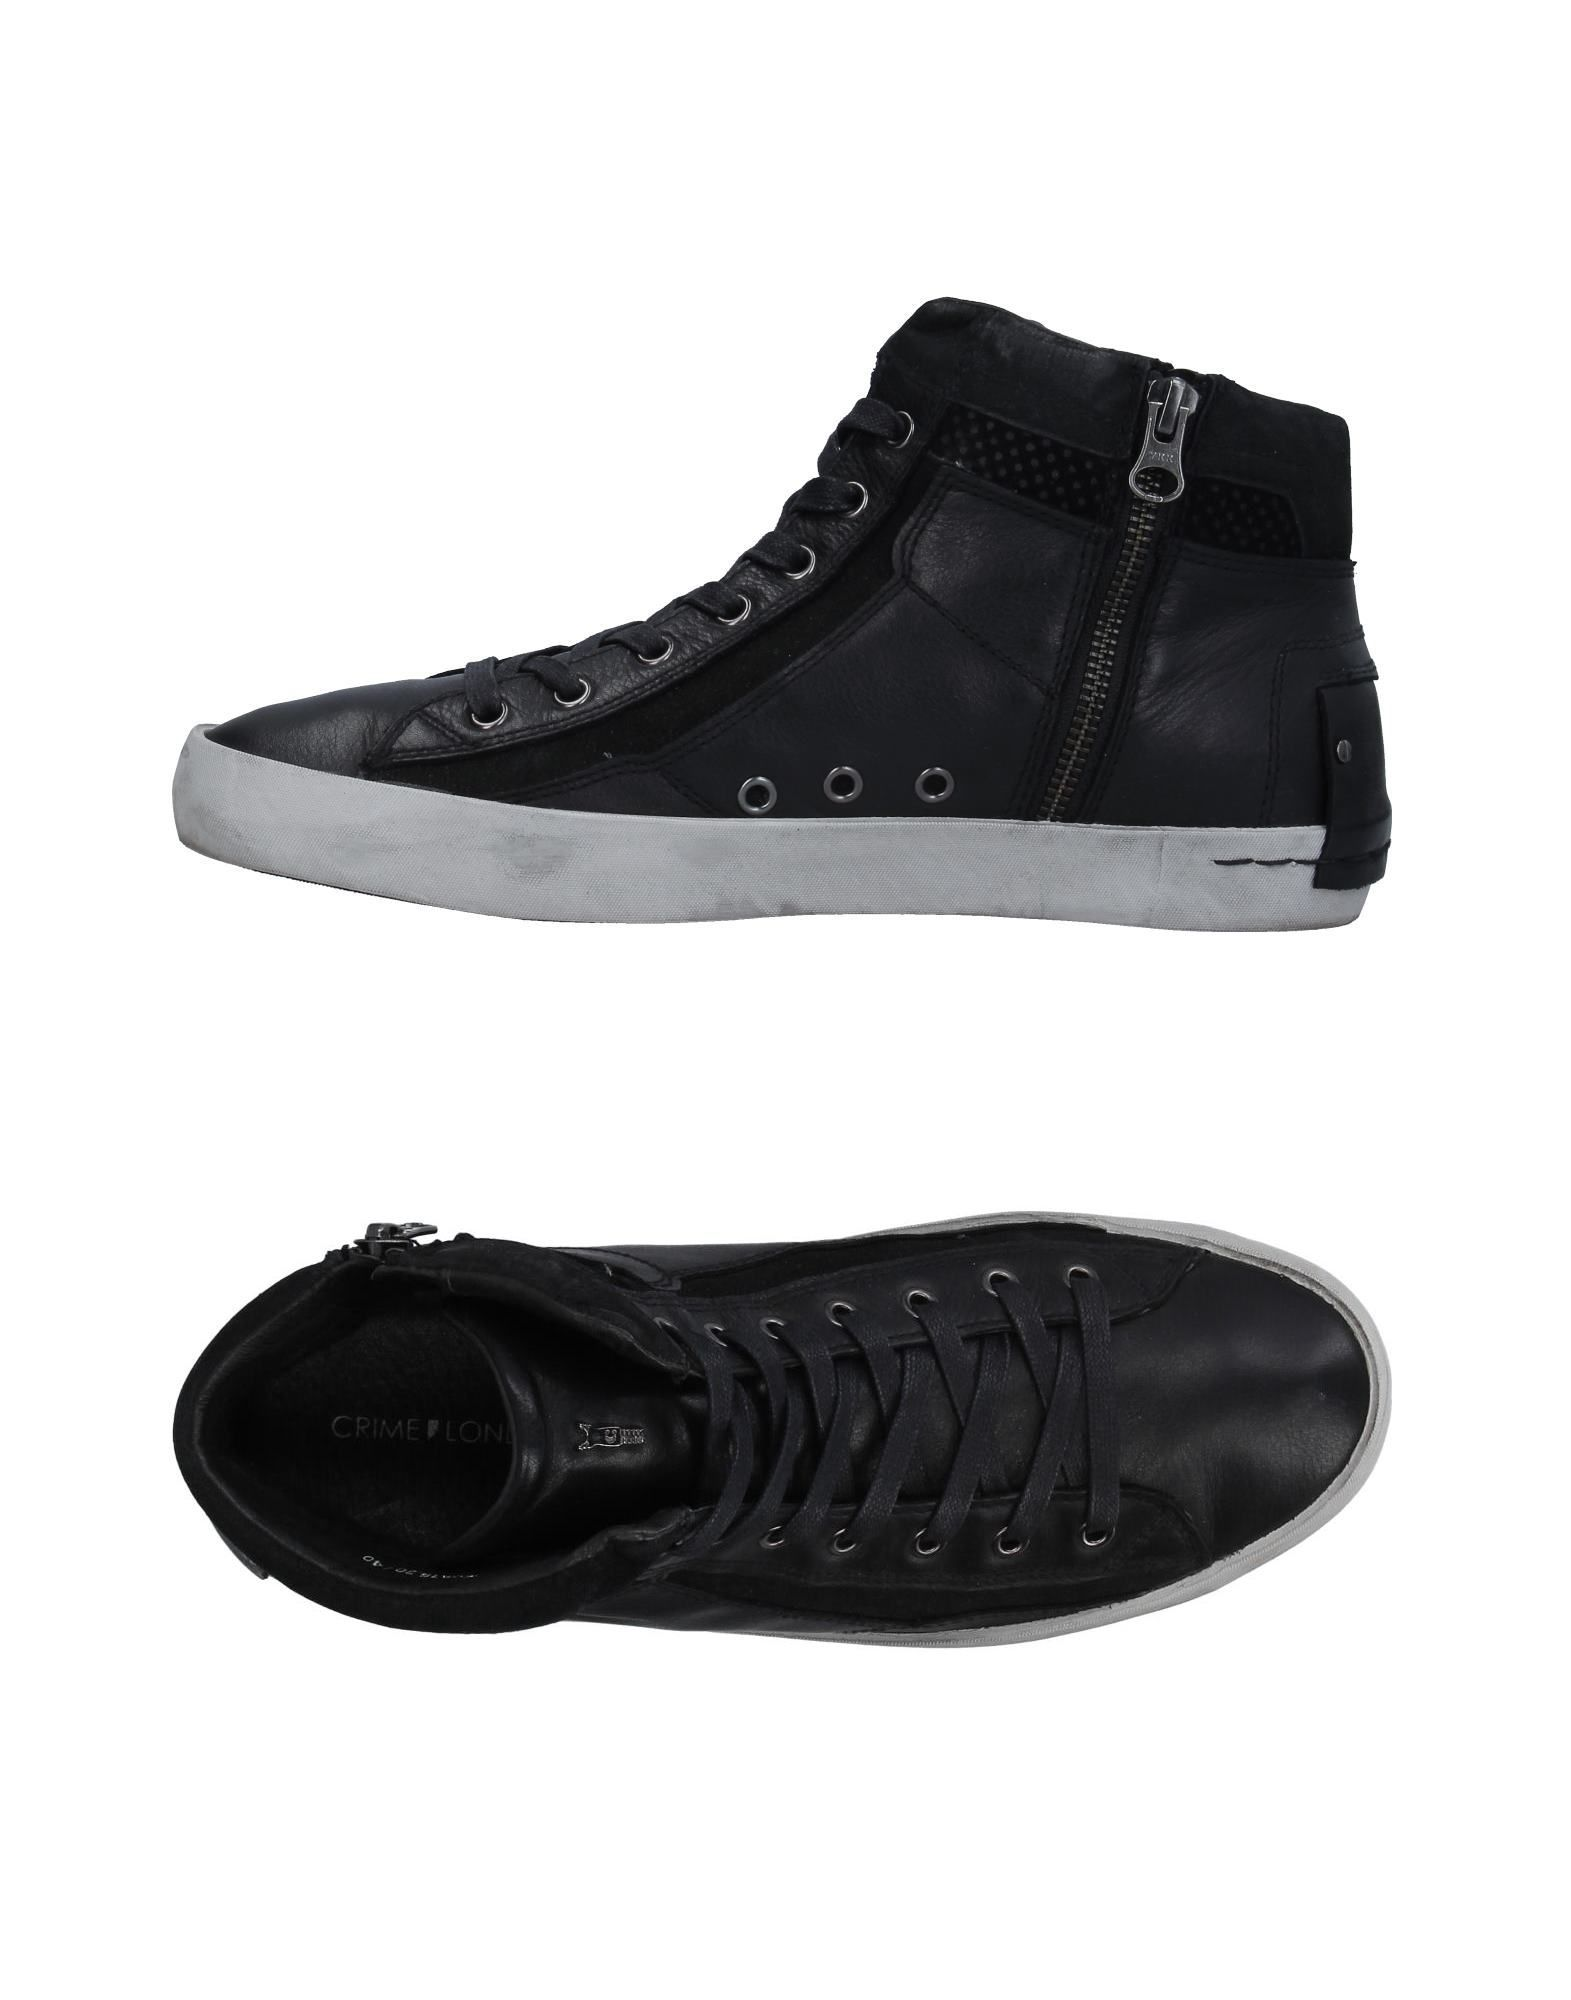 Rabatt echte Schuhe Crime London 11296793UB Sneakers Herren  11296793UB London a4d805